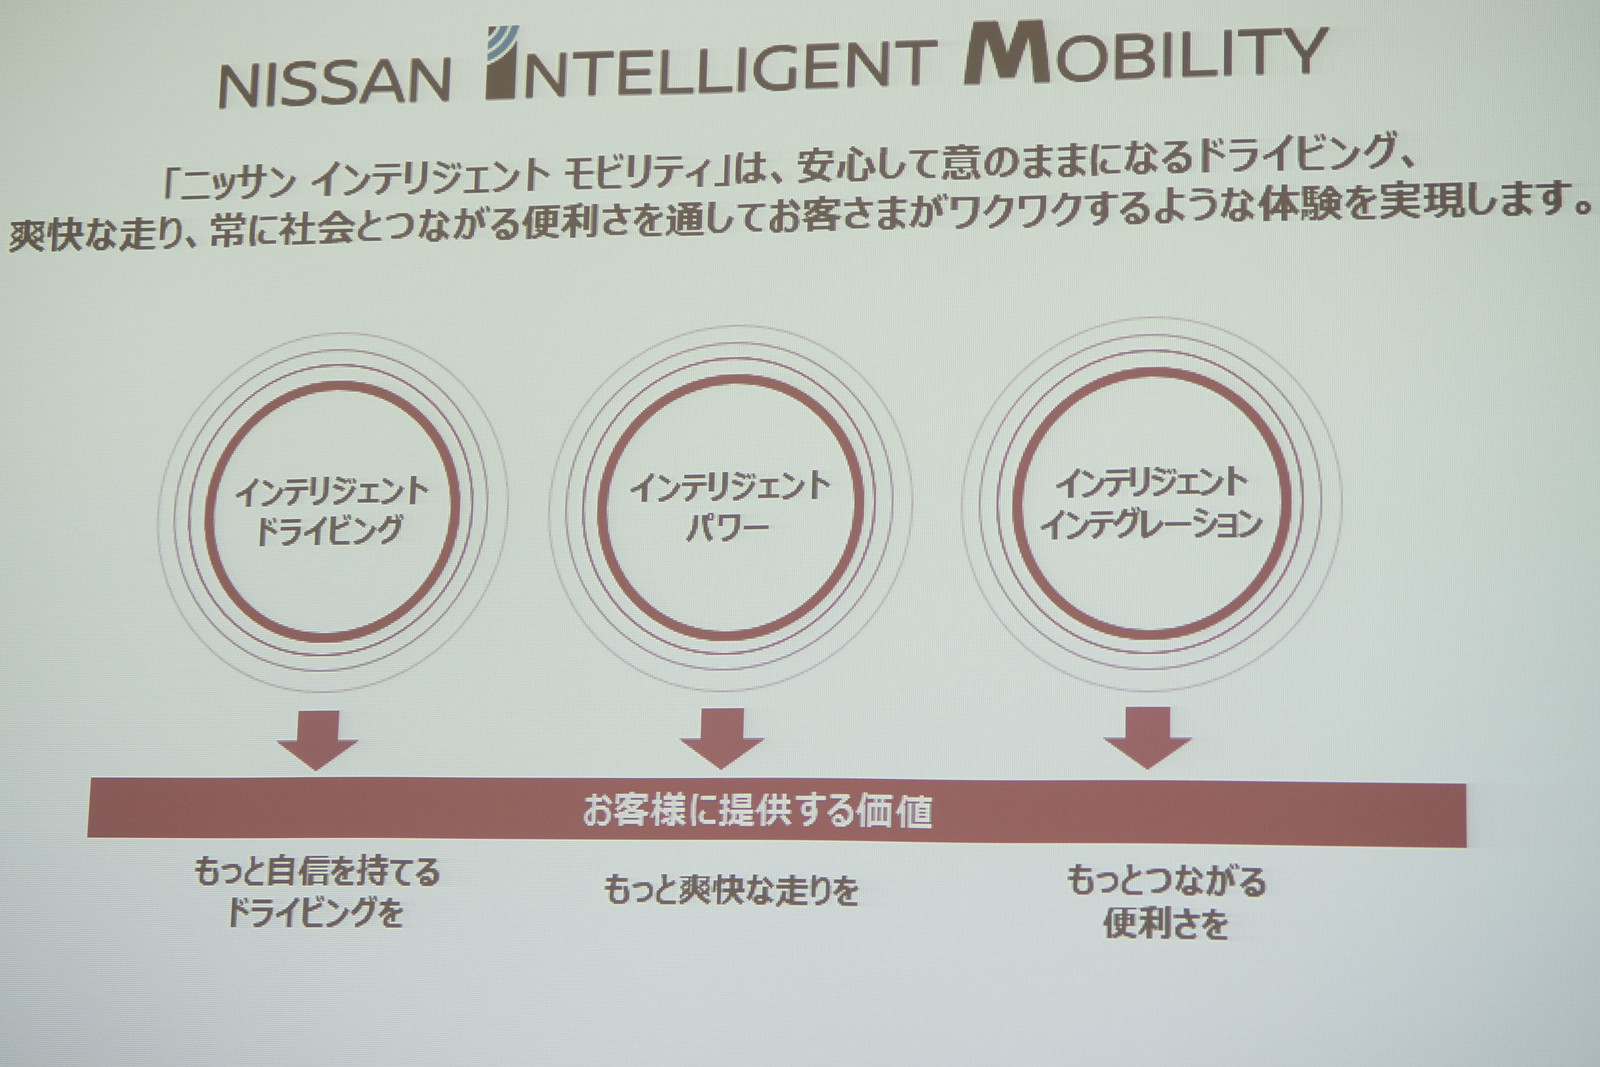 Nissan_Intelligent_Mobility-2